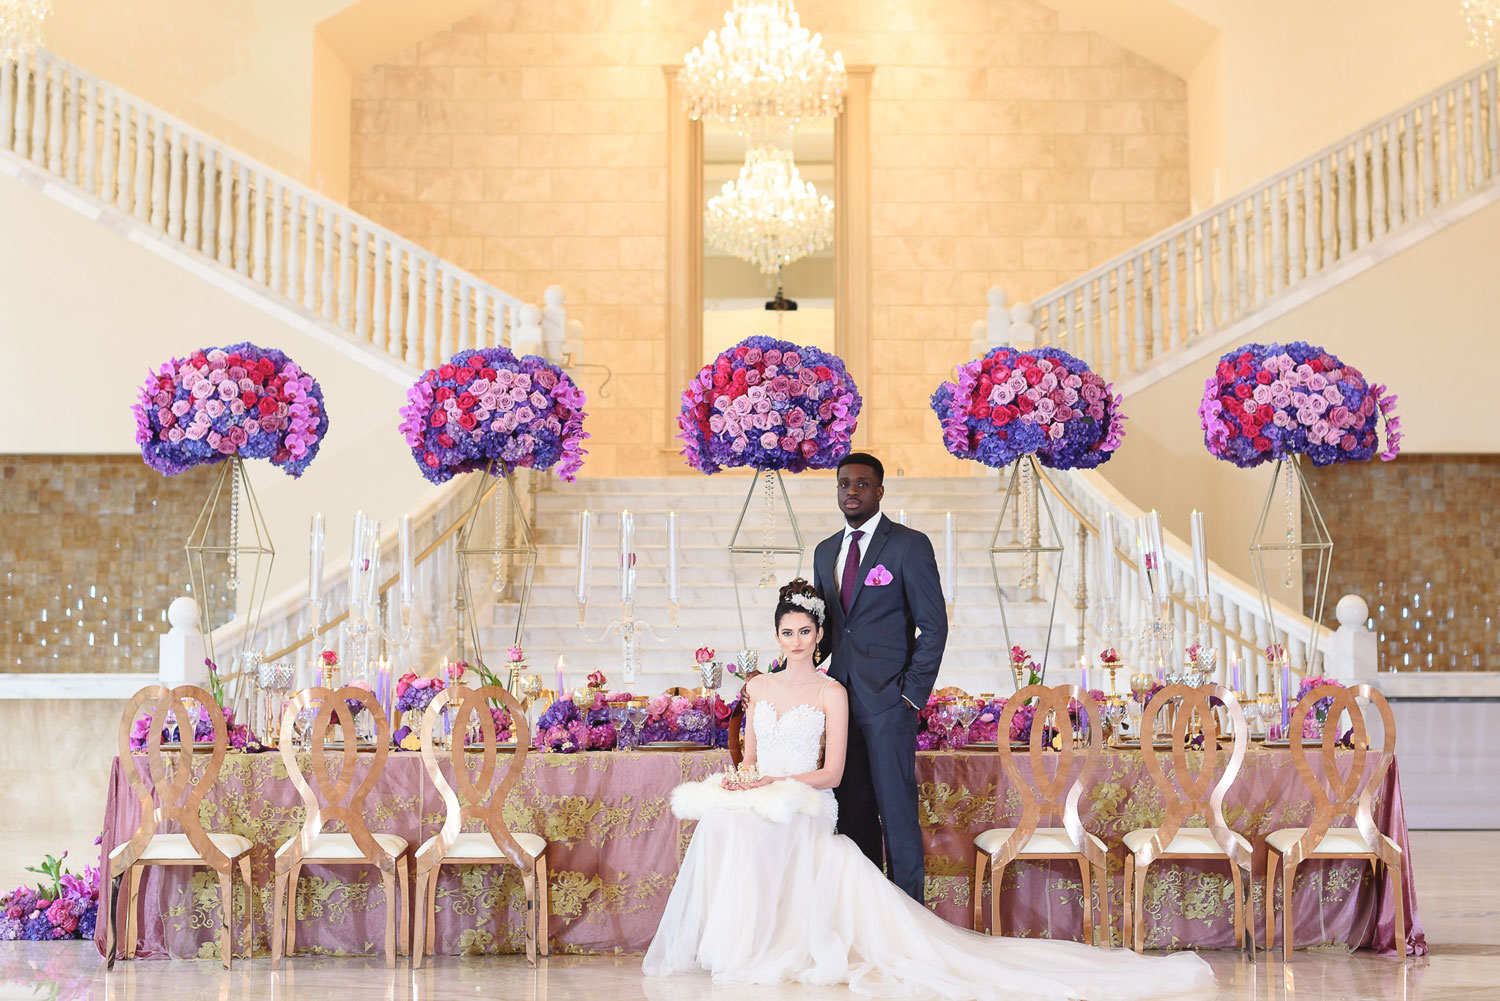 Styled shoot with bright purple color palette storybook setting Lily V Events table